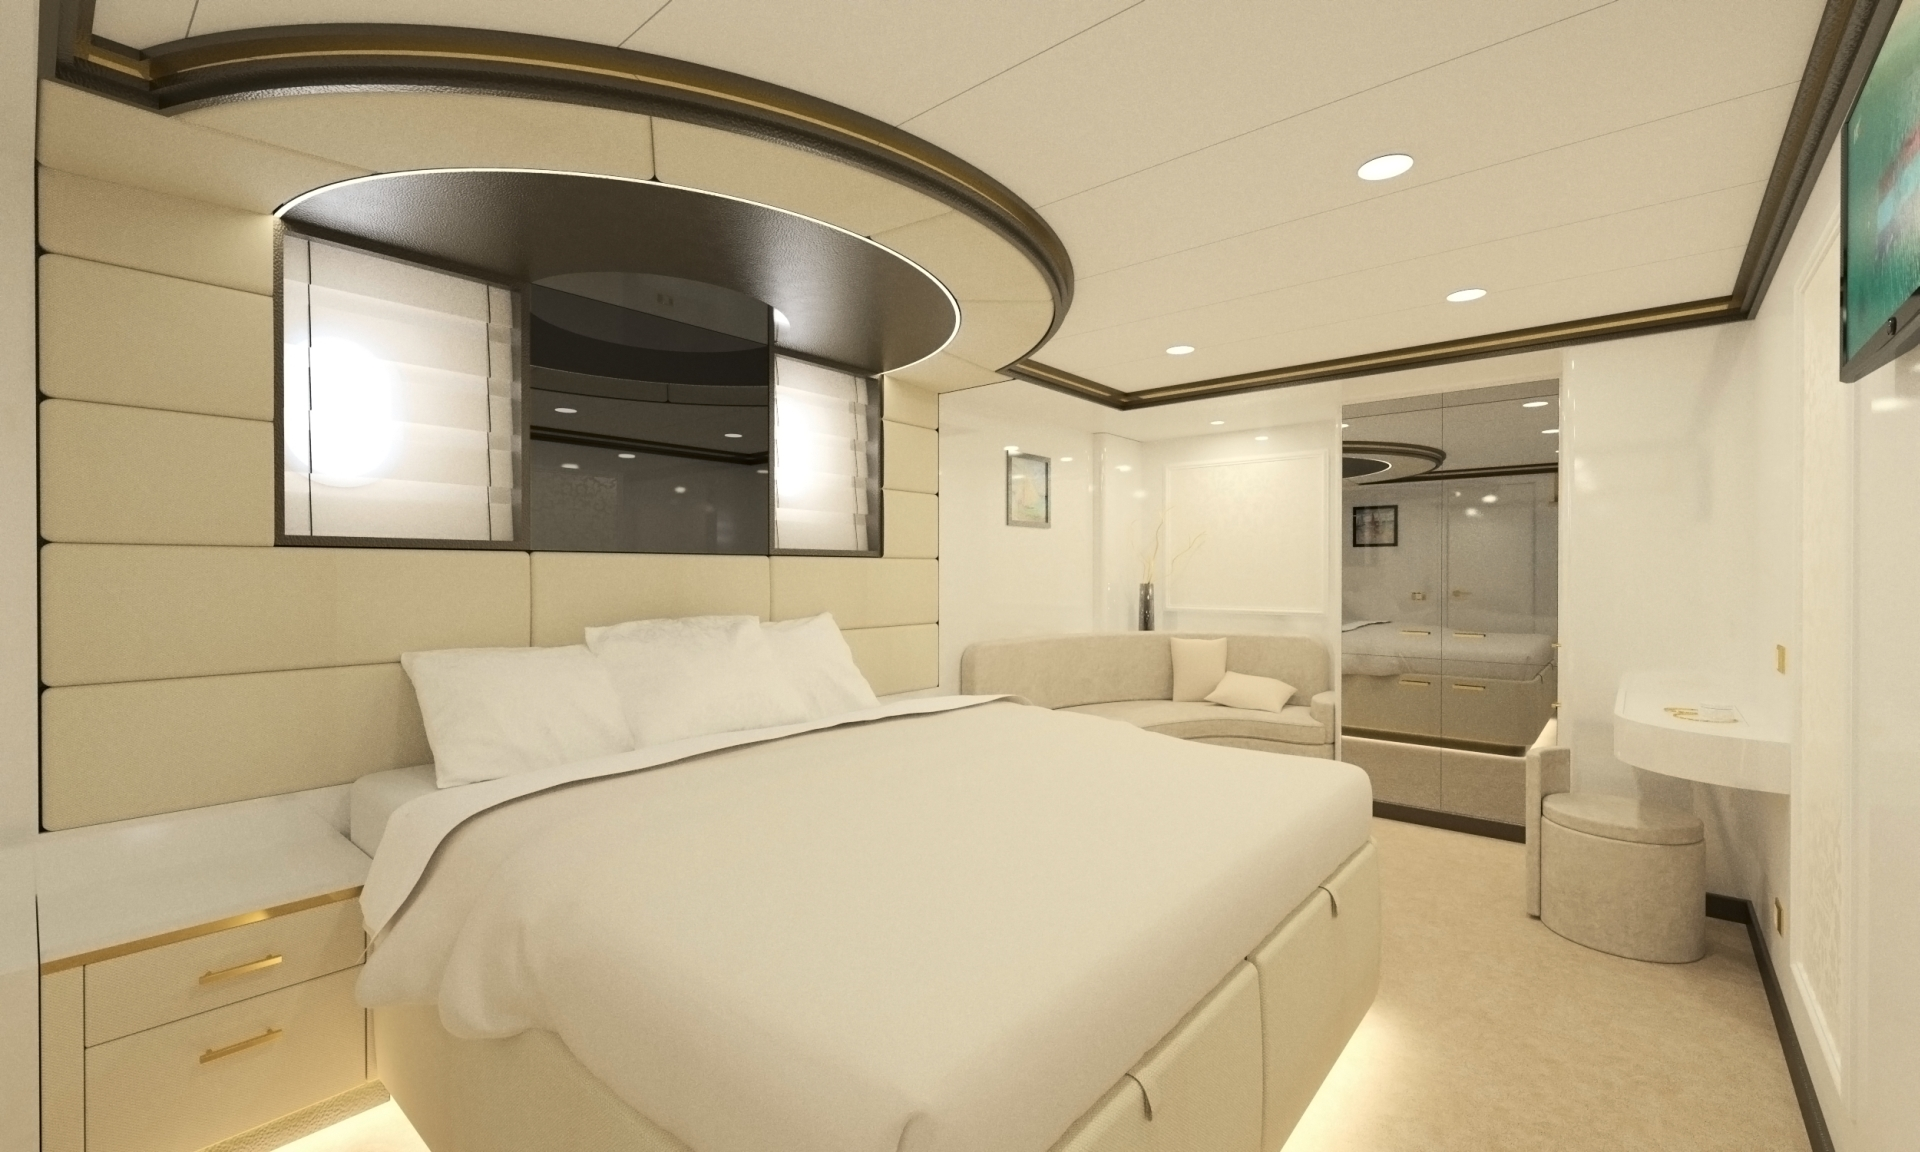 Large ensuite staterooms for guests